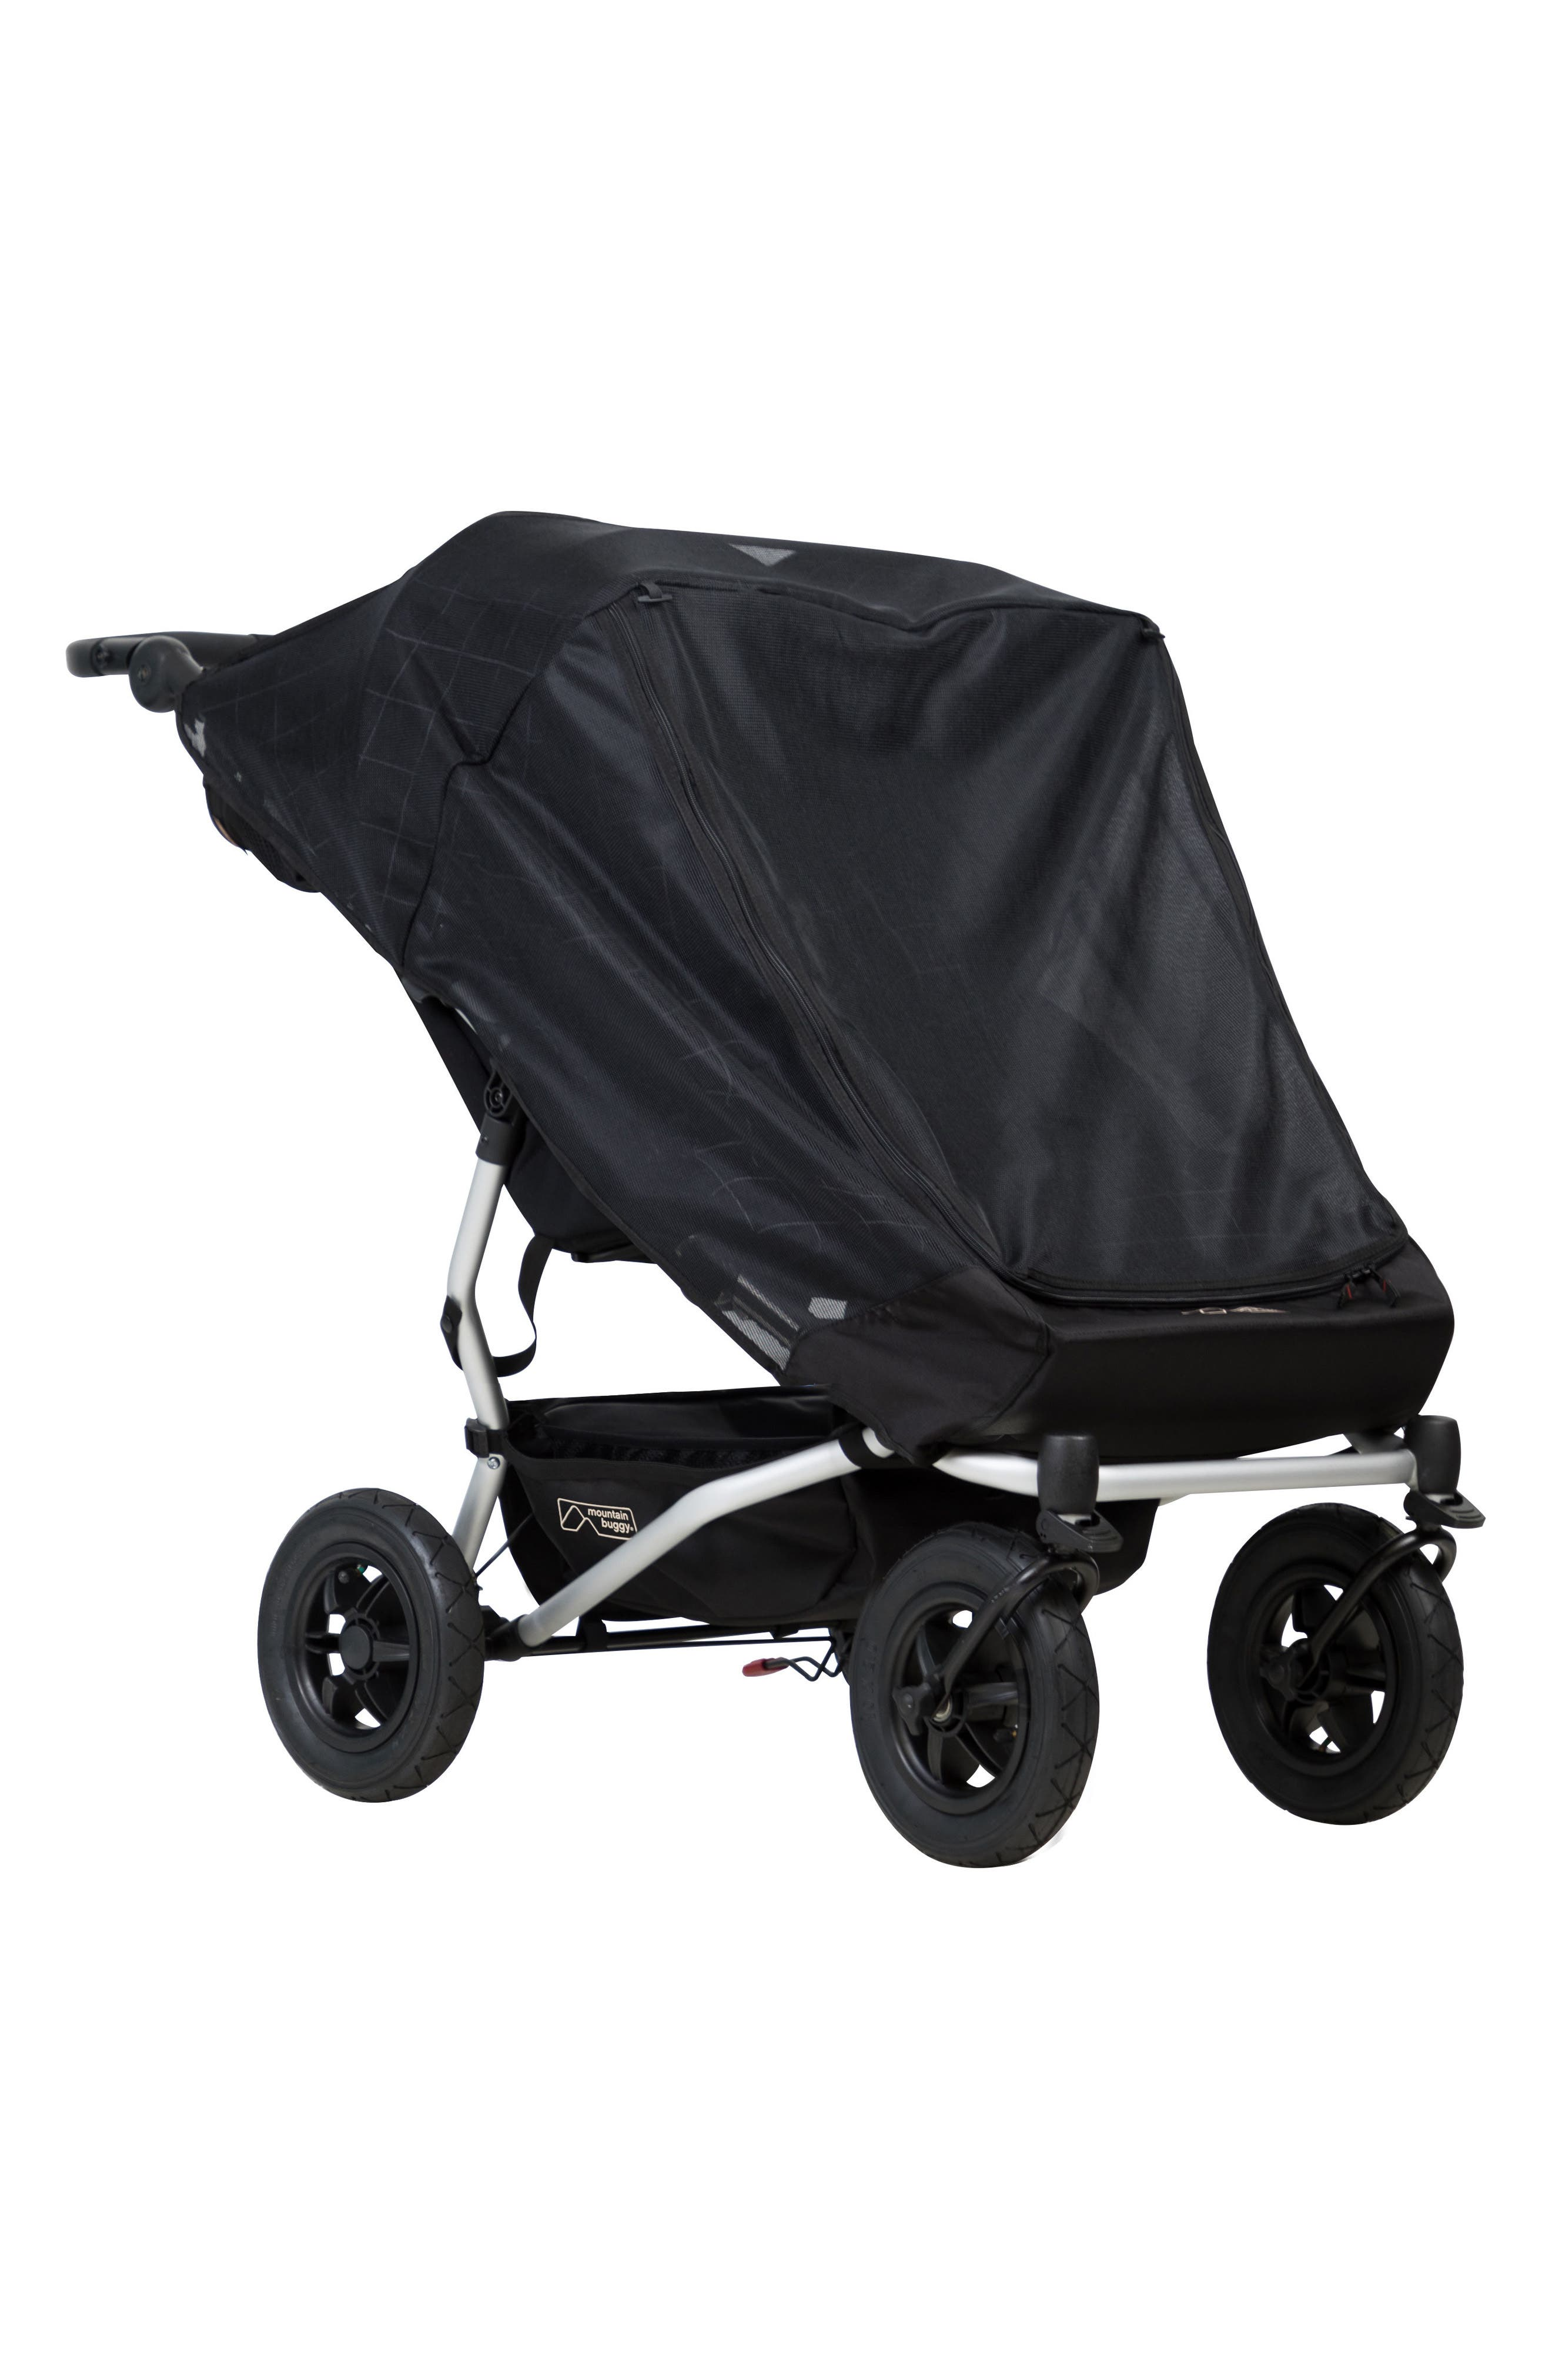 Main Image - mountain buggy 2017 Duet Stroller Double Storm Cover